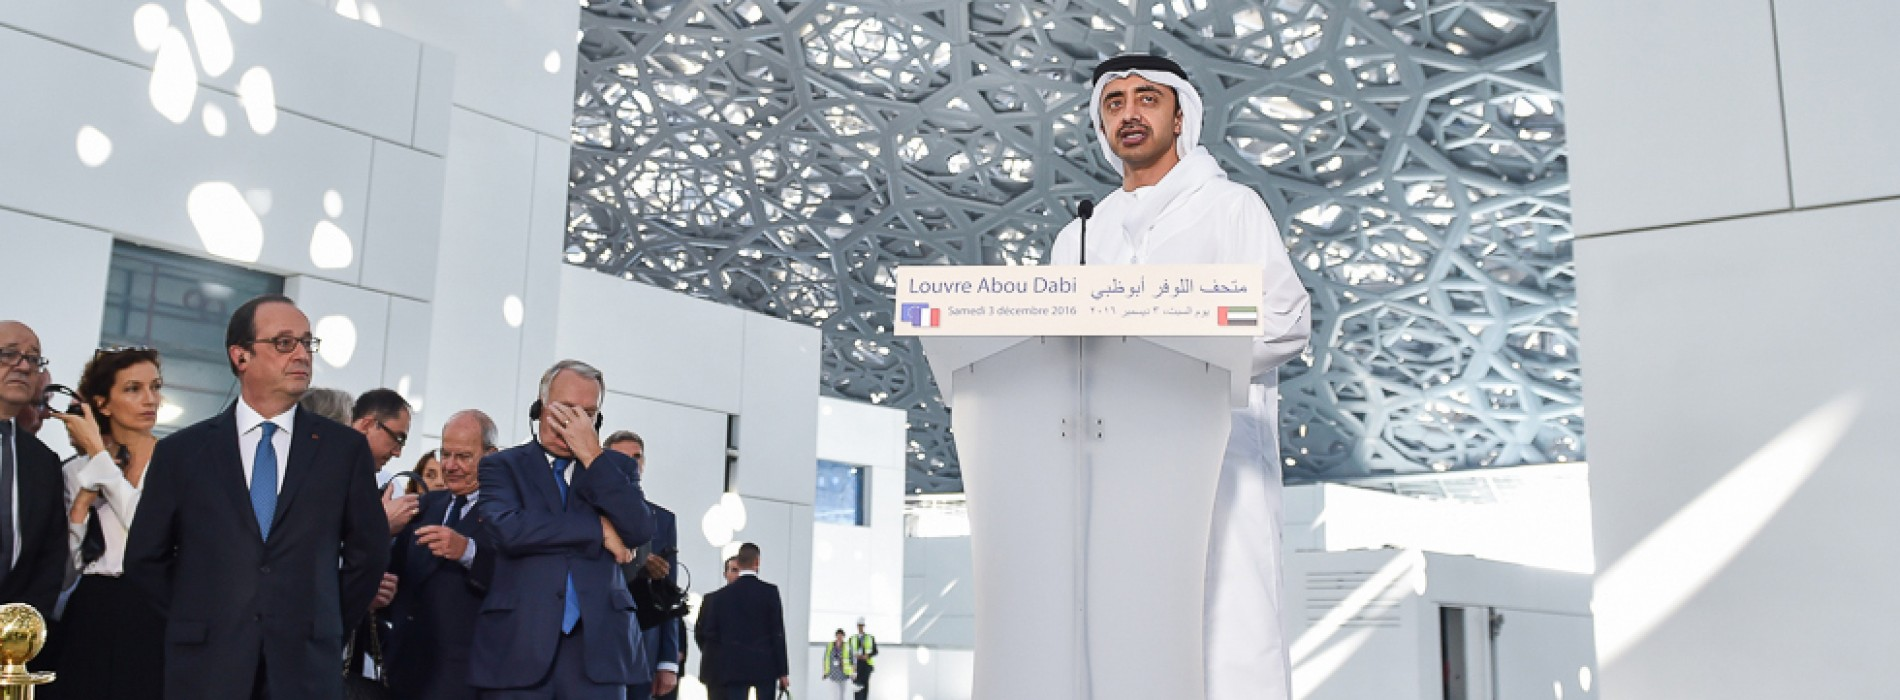 French President tours Louvre Abu Dhabi